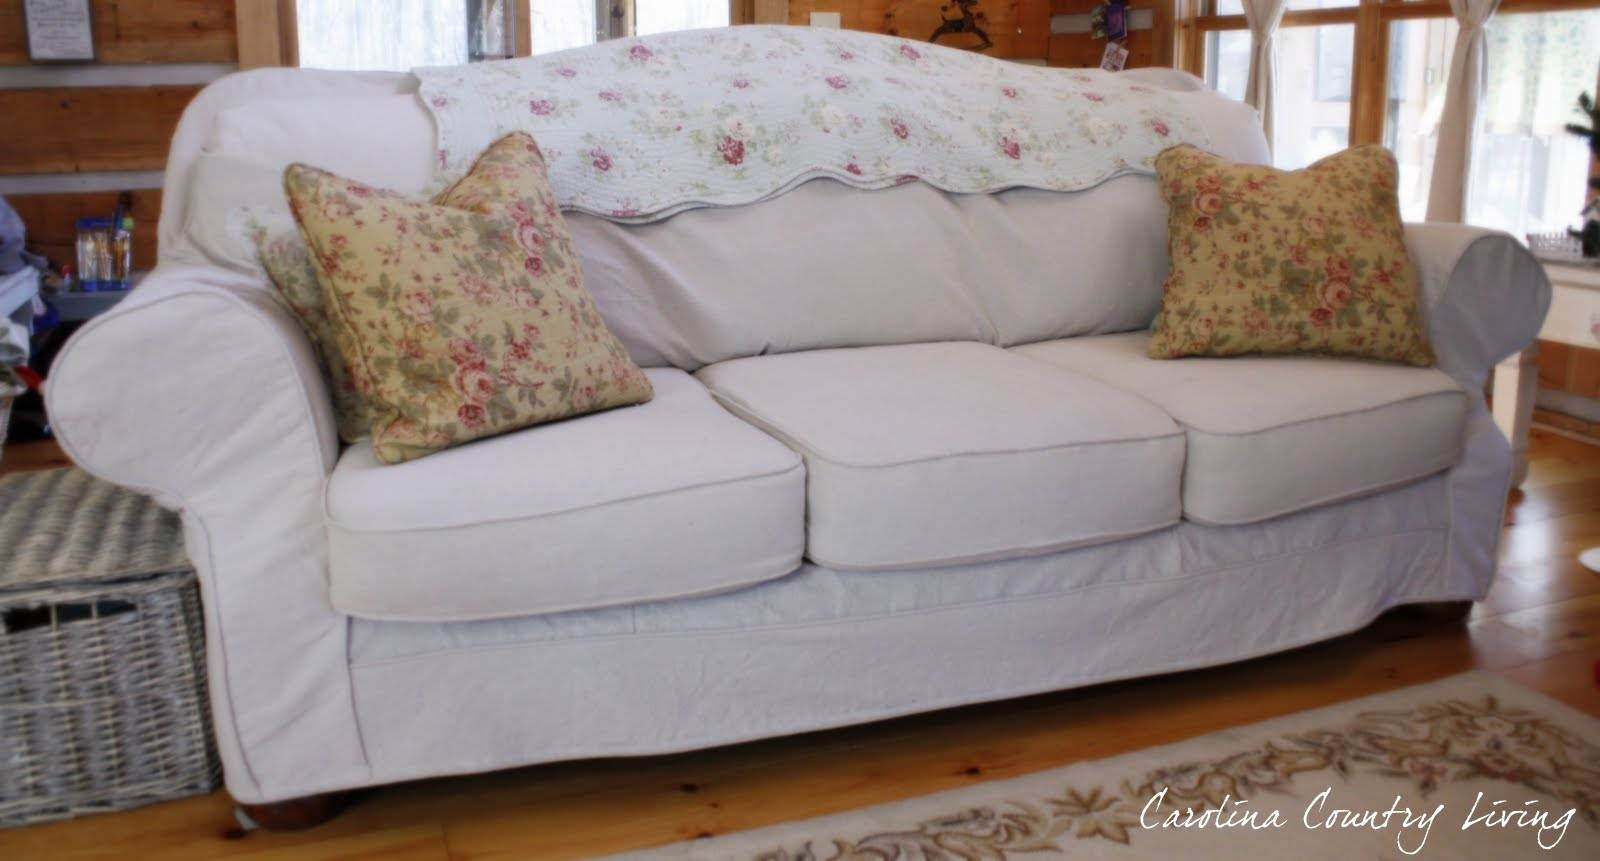 Carolina Country Living: Drop Cloth Sofa Slipcover in Camel Back Sofa Slipcovers (Image 3 of 15)